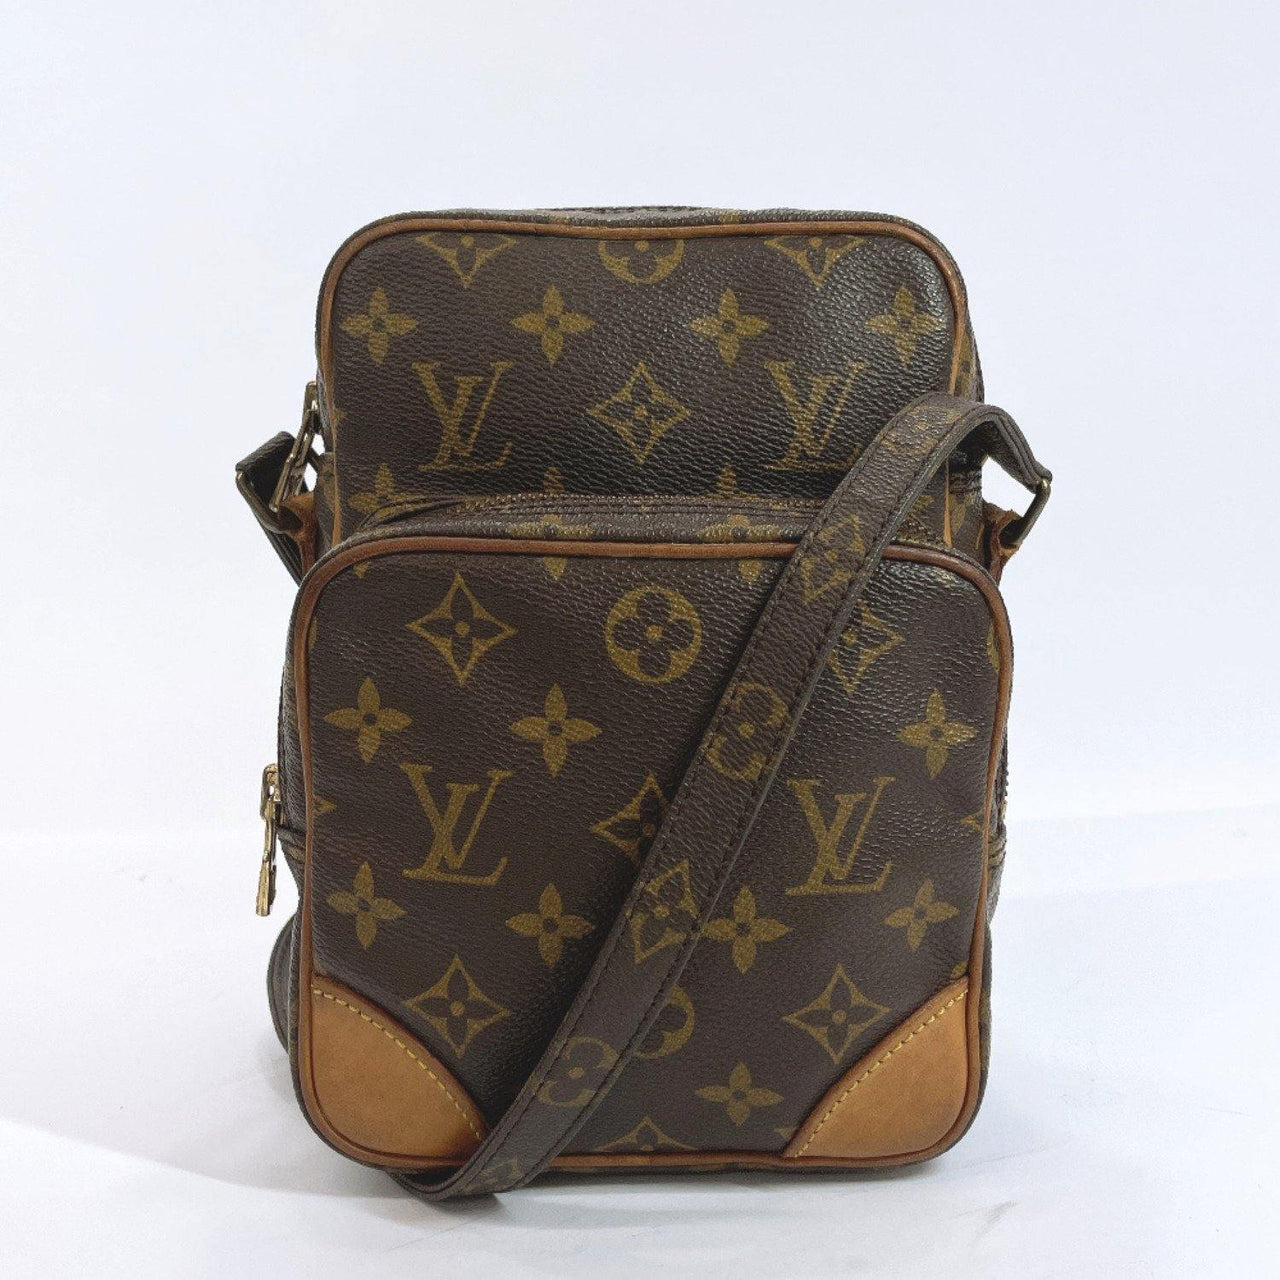 LOUIS VUITTON Shoulder Bag M45236 Amazon Monogram canvas Brown Women Used - JP-BRANDS.com